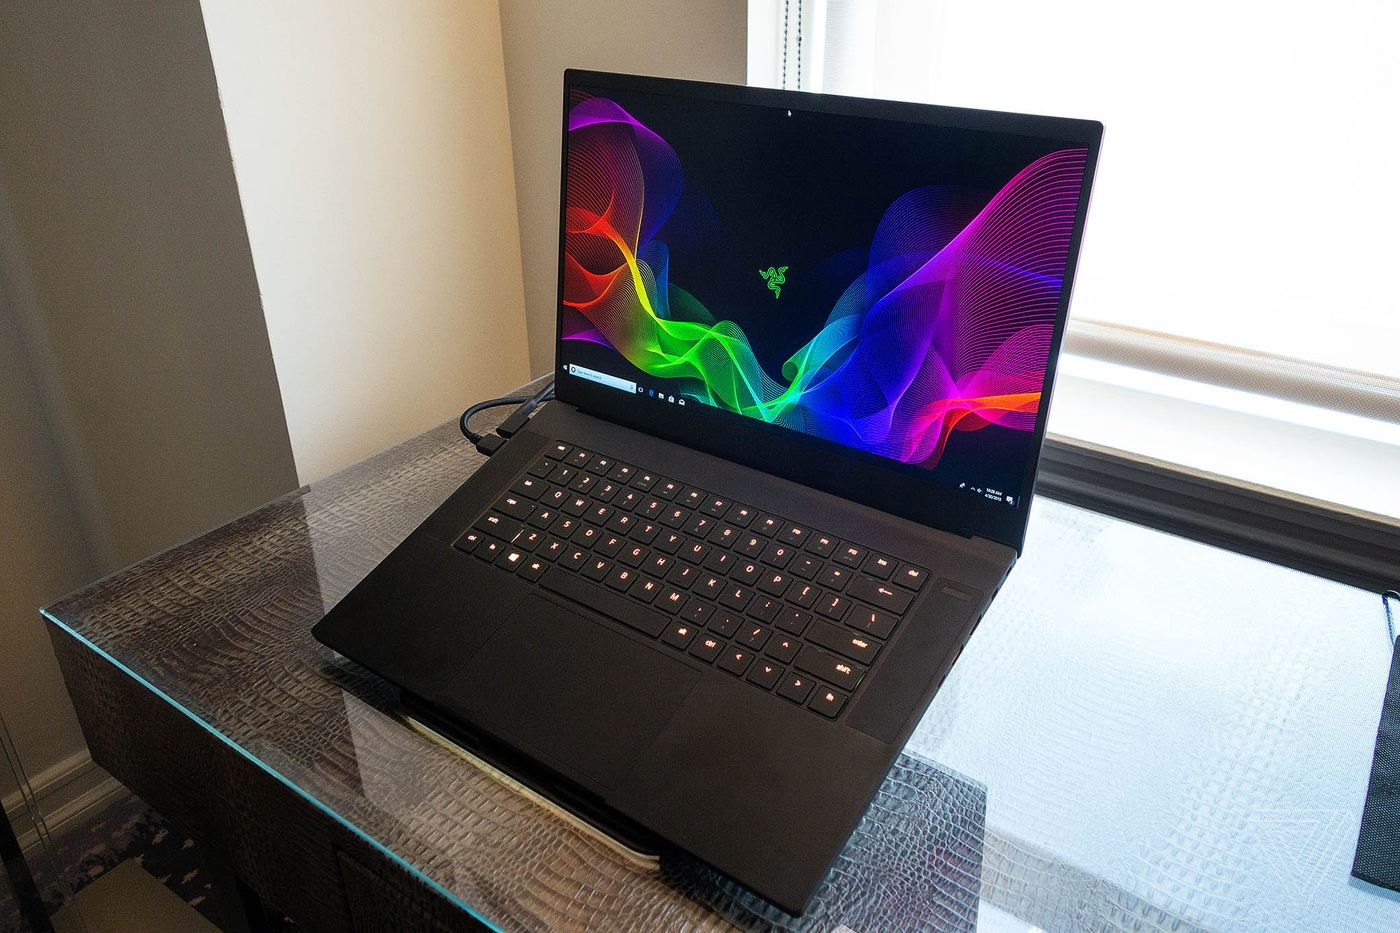 The new Razer Blade has a bigger screen, smaller bezels, and